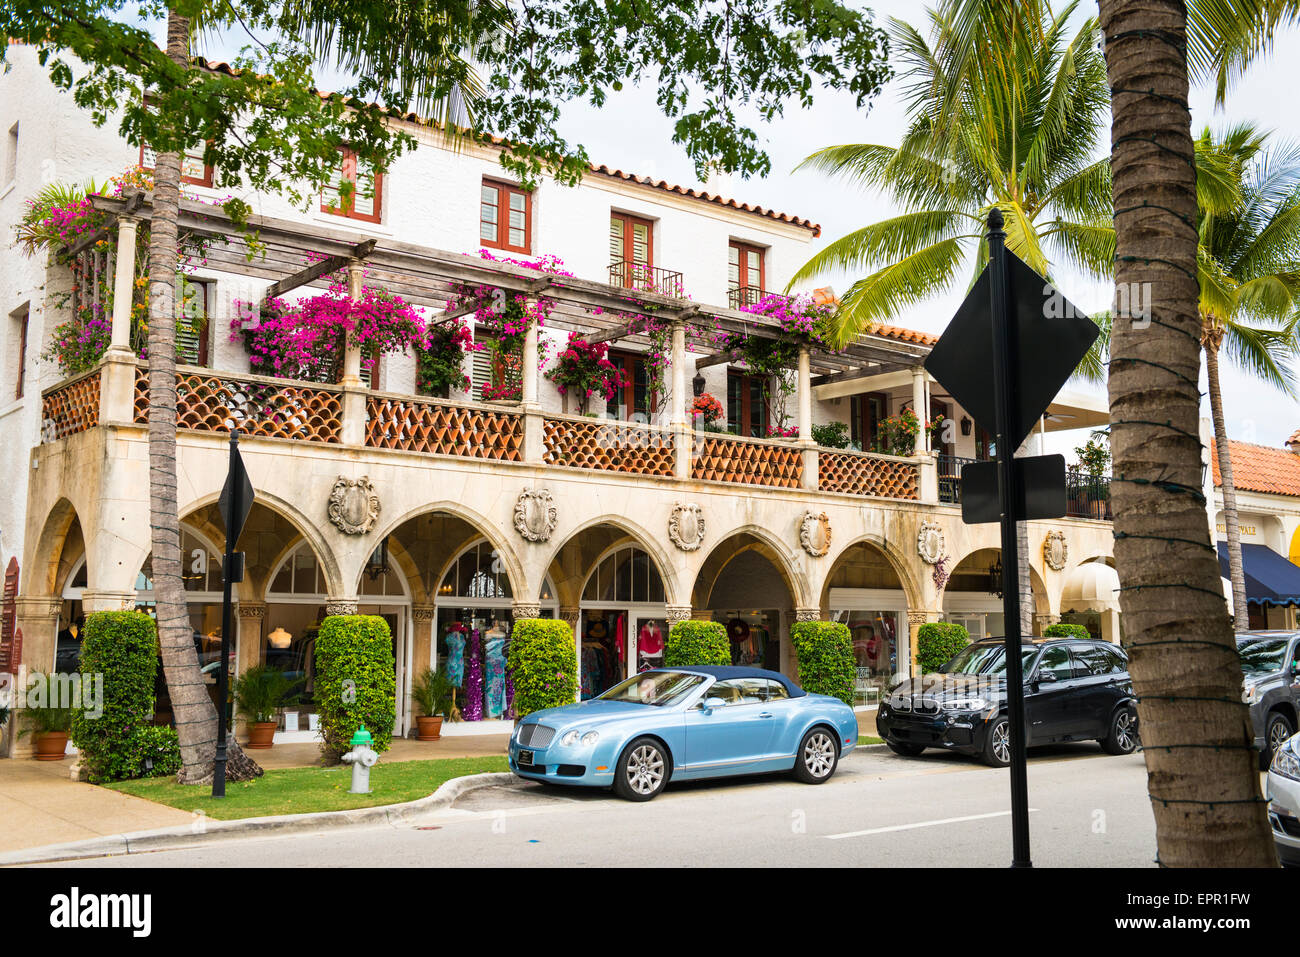 Florida Palm Beach Worth Avenue luxury shopping street road colonial style arcade colonnade fancy cars Bentley BMW - Stock Image